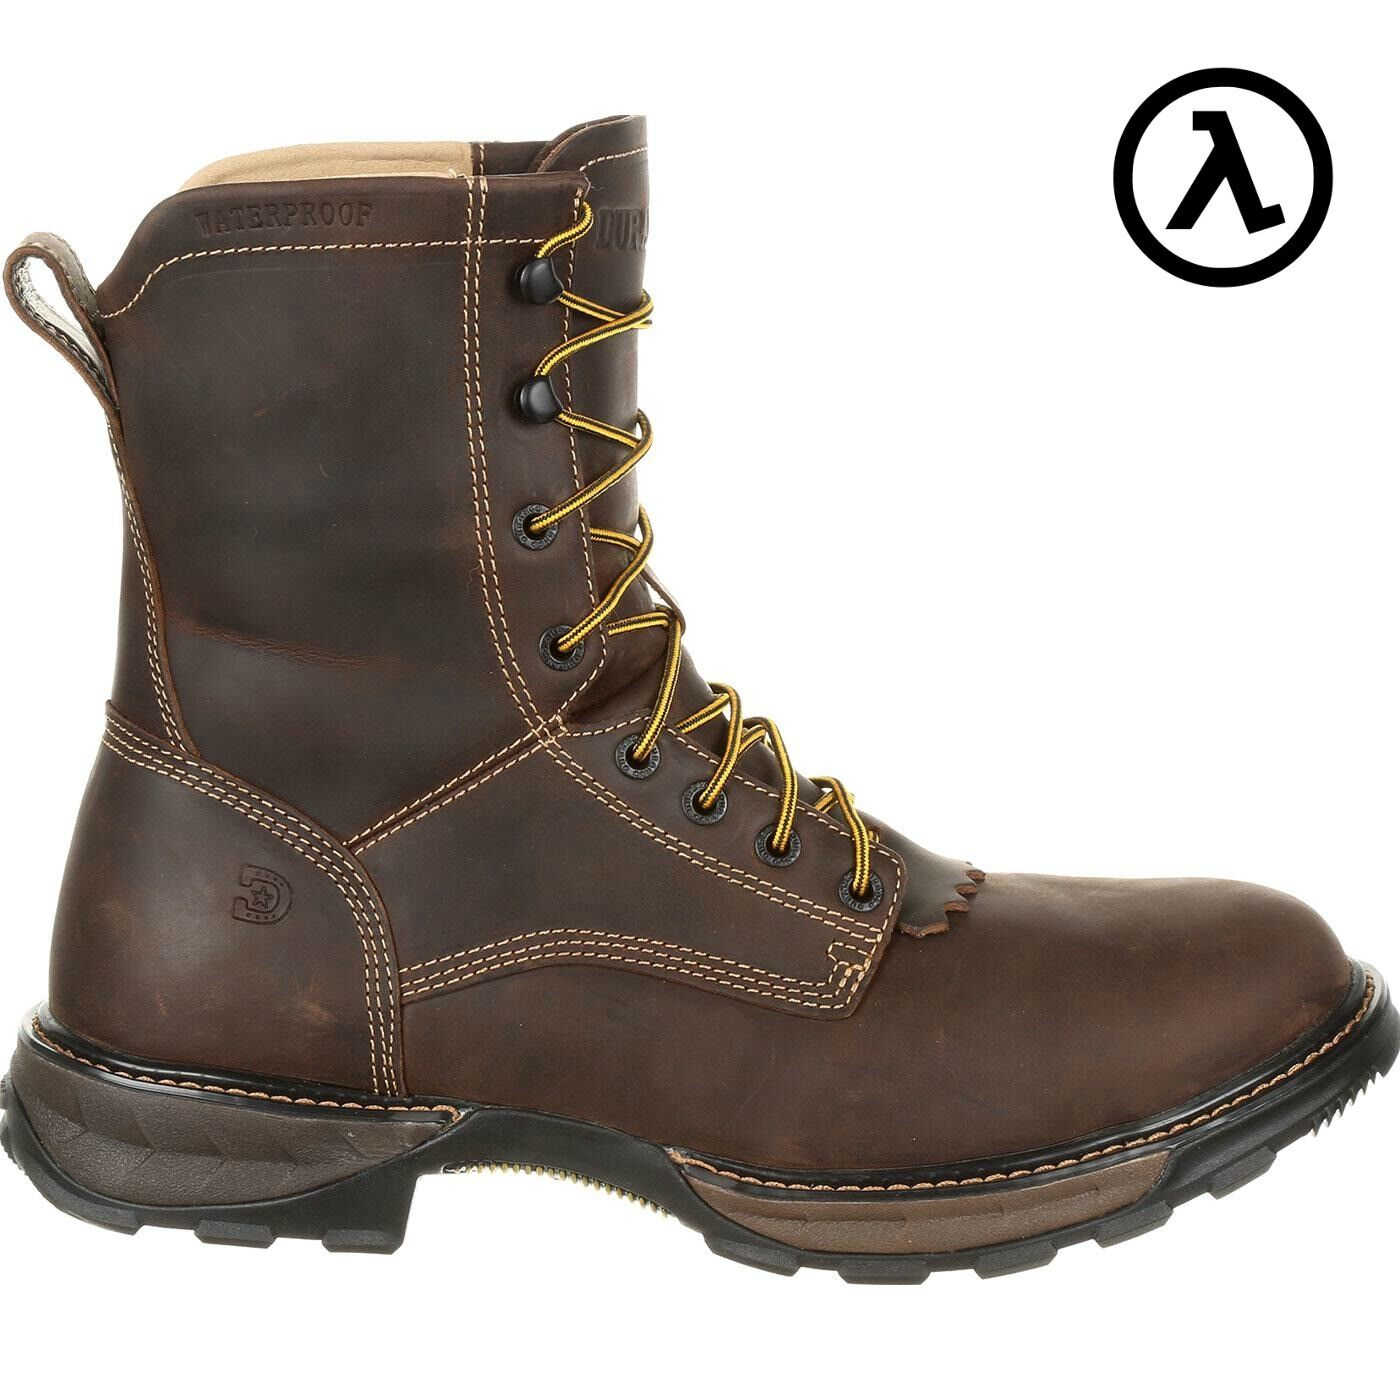 DURANGO MAVERICK XP STEEL TOE WATERPROOF LACER WORK stivali DDB0173  ALL DimensioneS